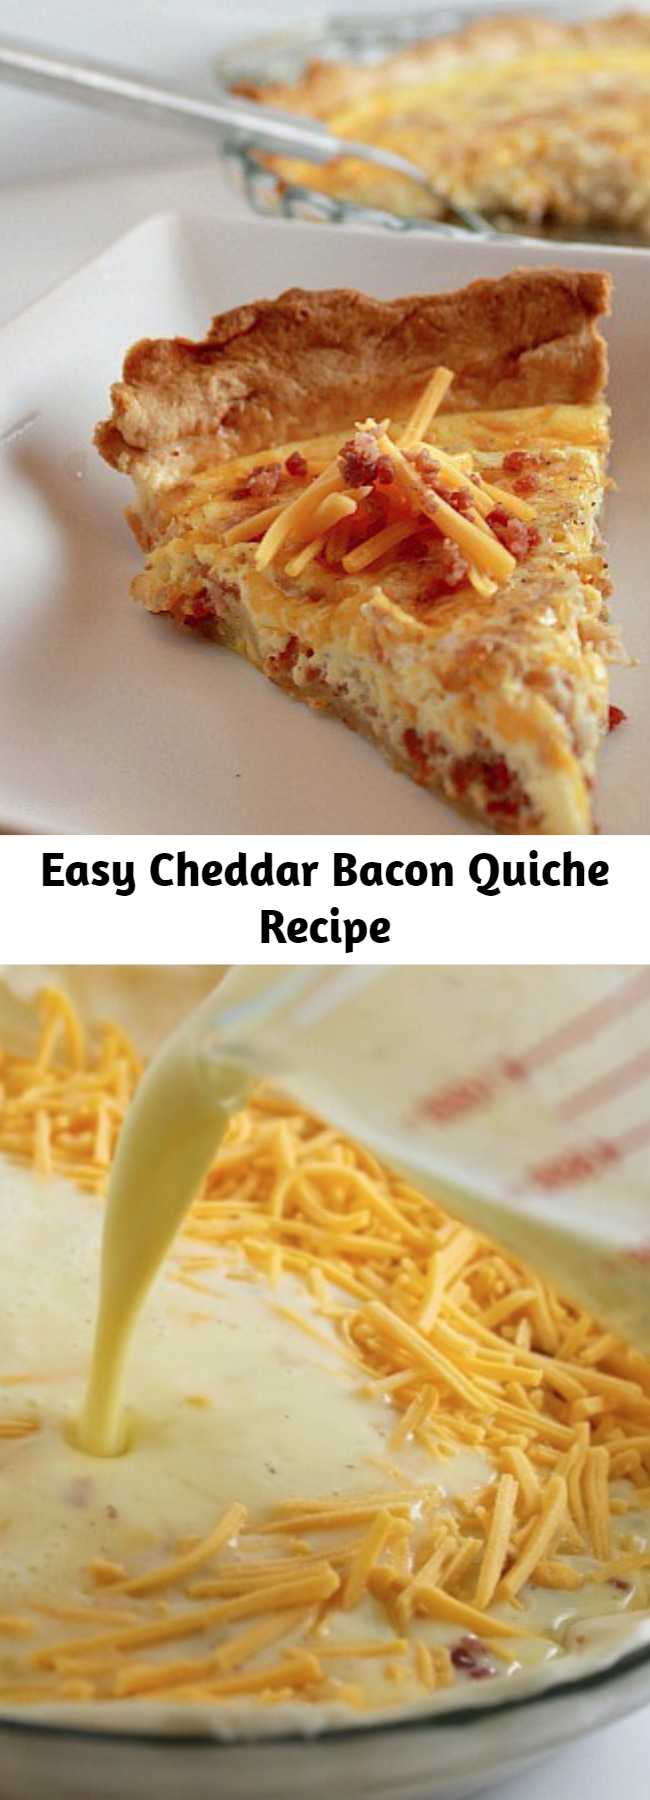 Easy Cheddar Bacon Quiche Recipe - This Cheddar Bacon Quiche recipe comes together quickly. It's very flexible allowing you to use what ever ingredients you have on hand.